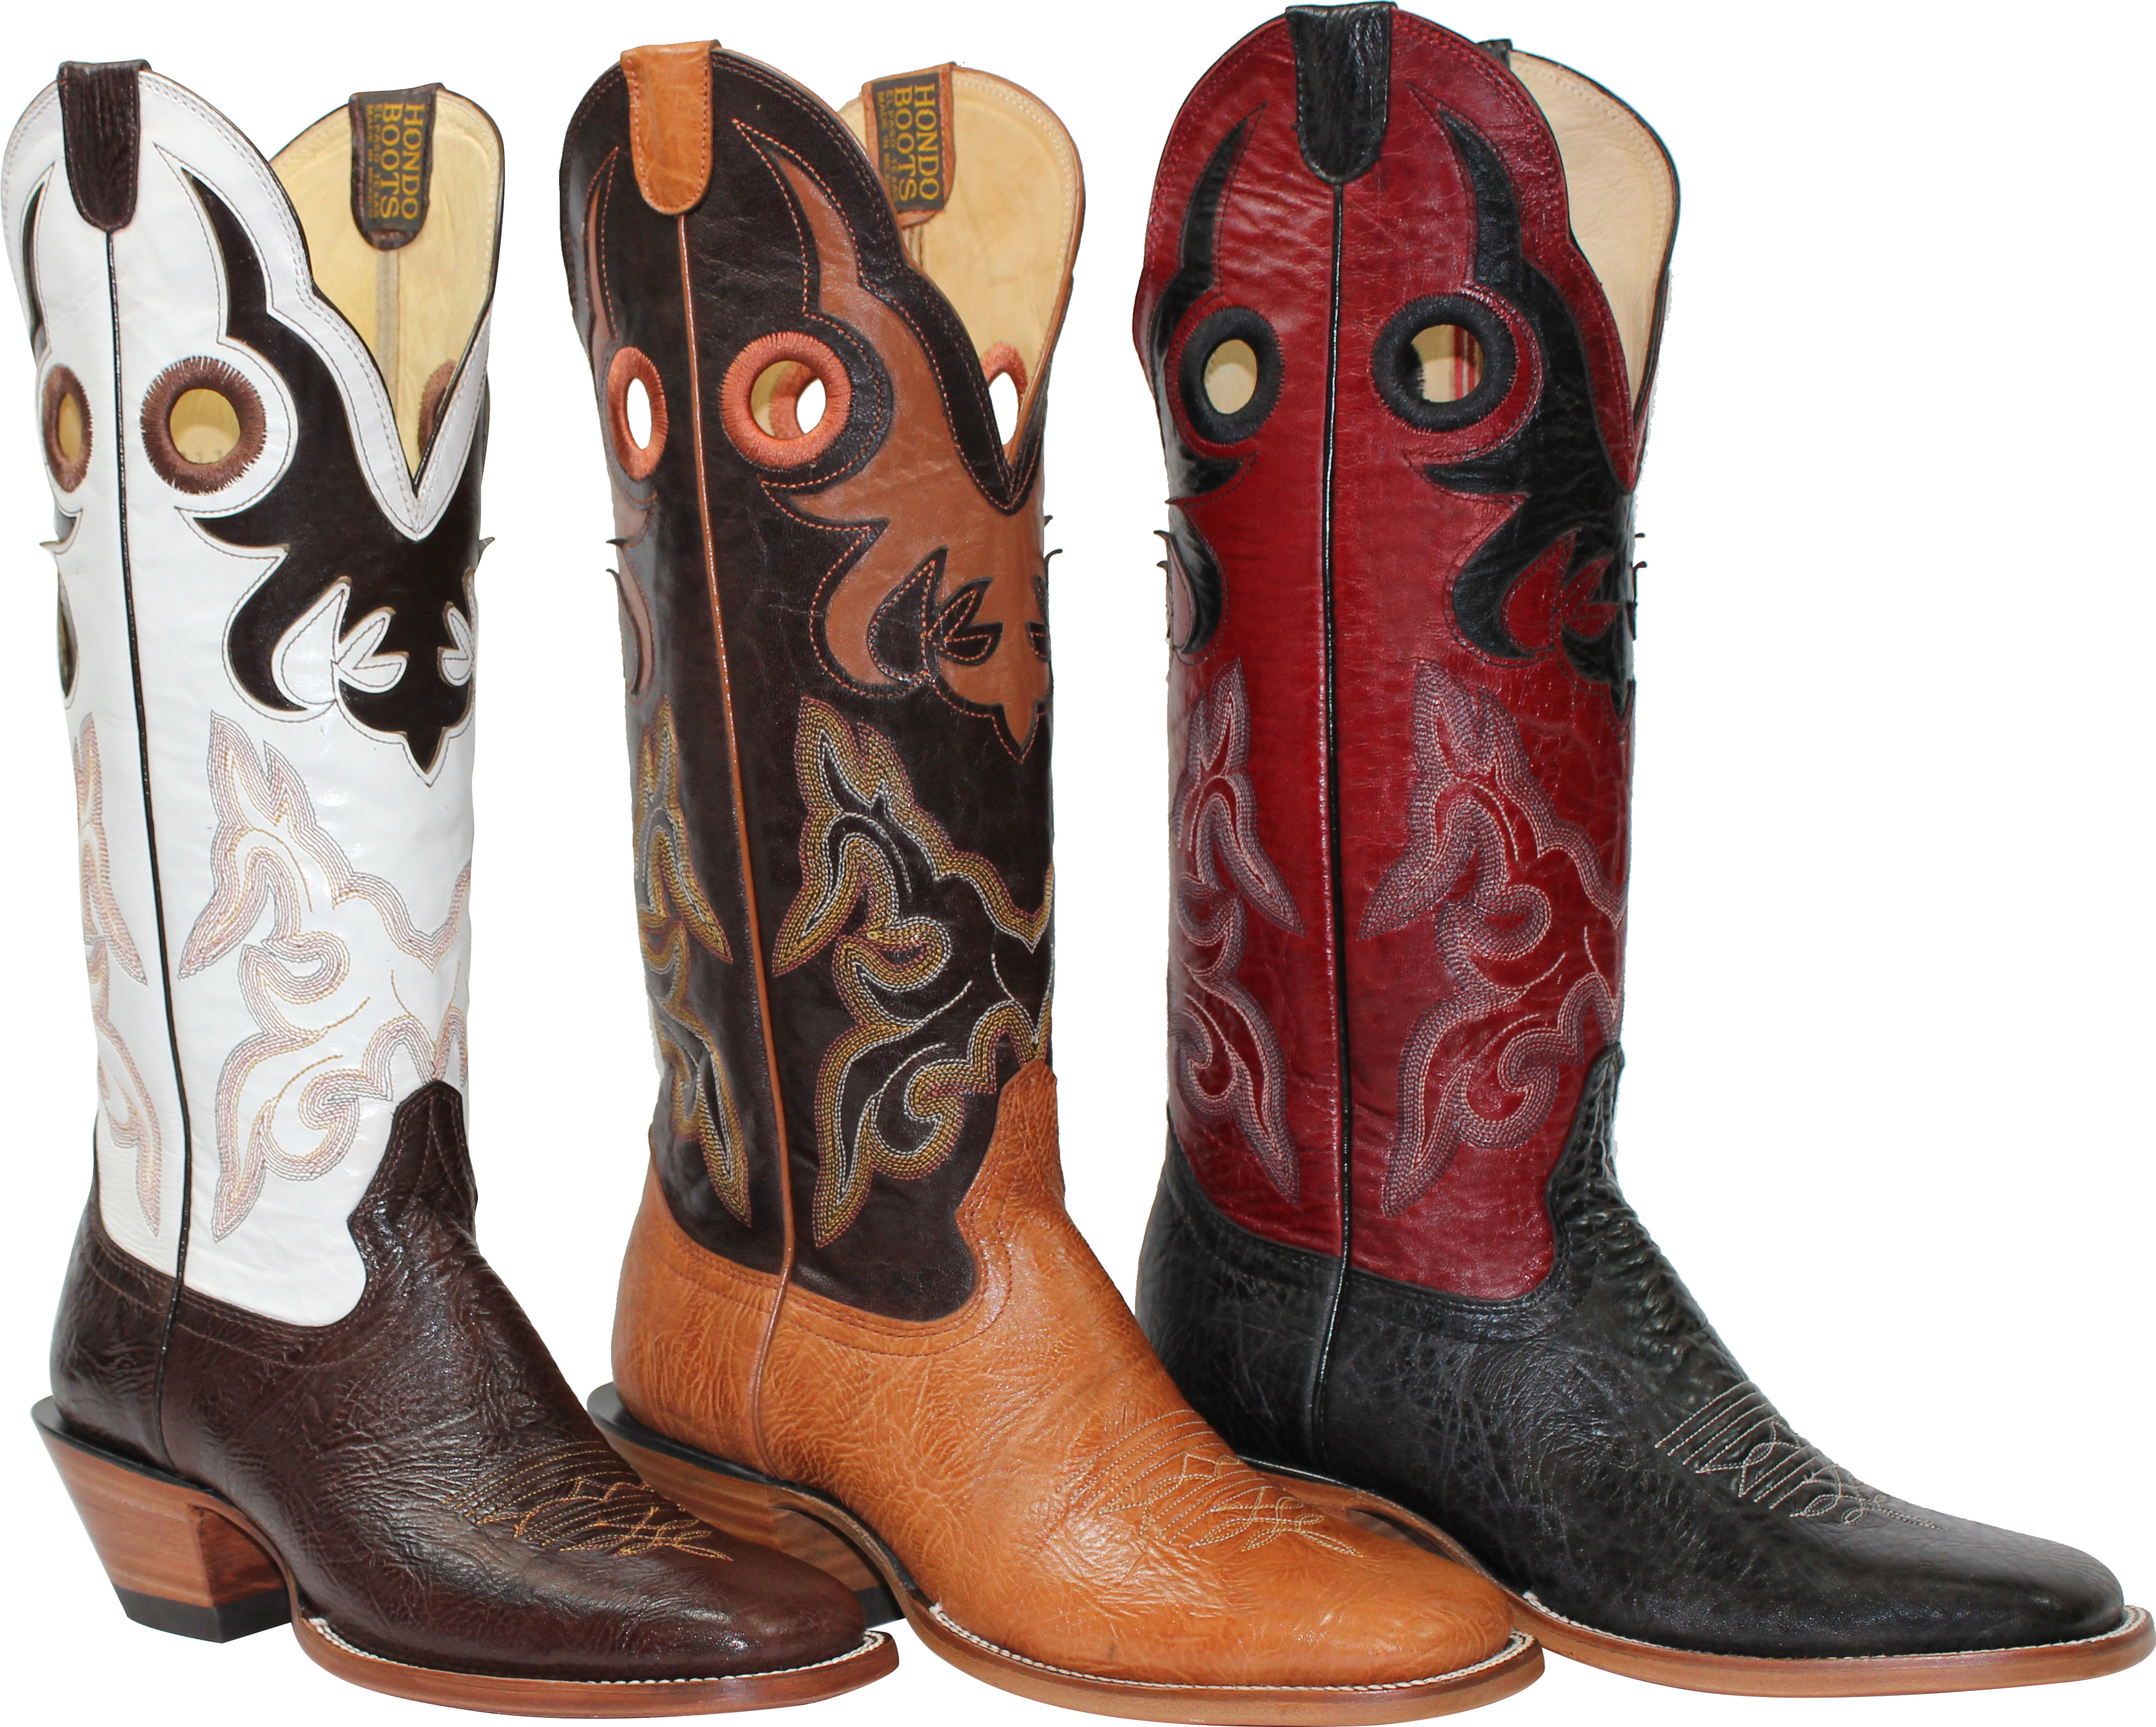 331bd265648 Our boot collection – HONDO BOOTS